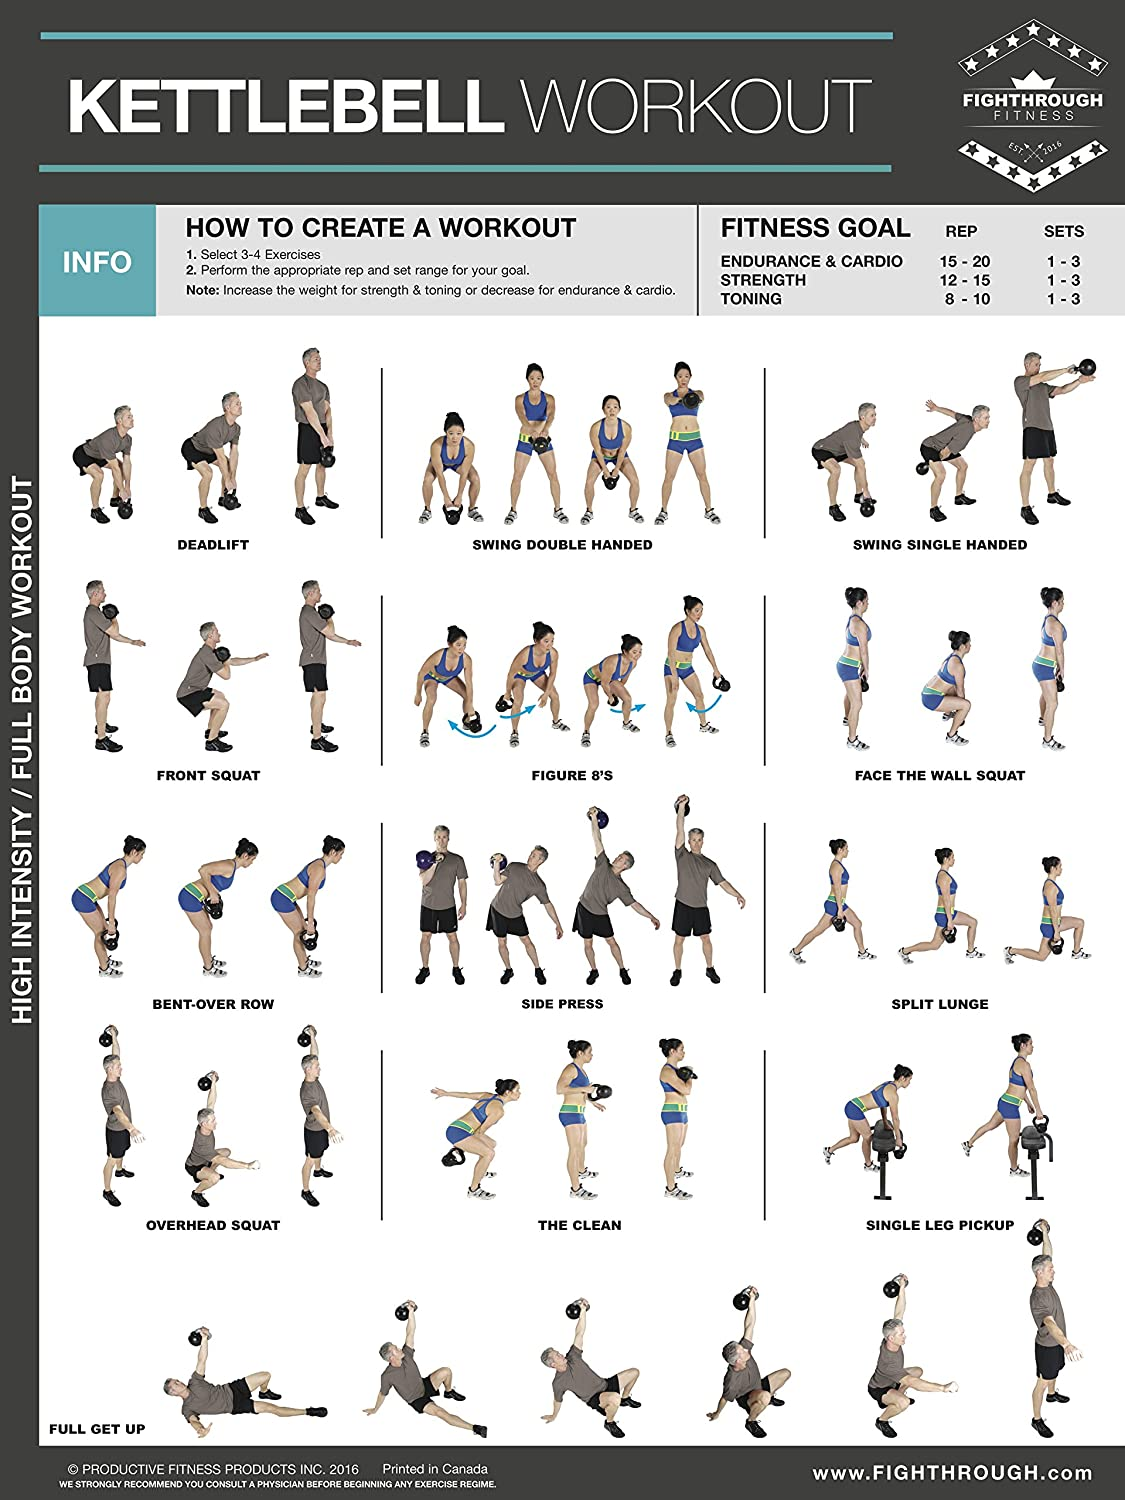 Circuito Kettlebell : Amazon kettlebell workout fitness poster laminated strength